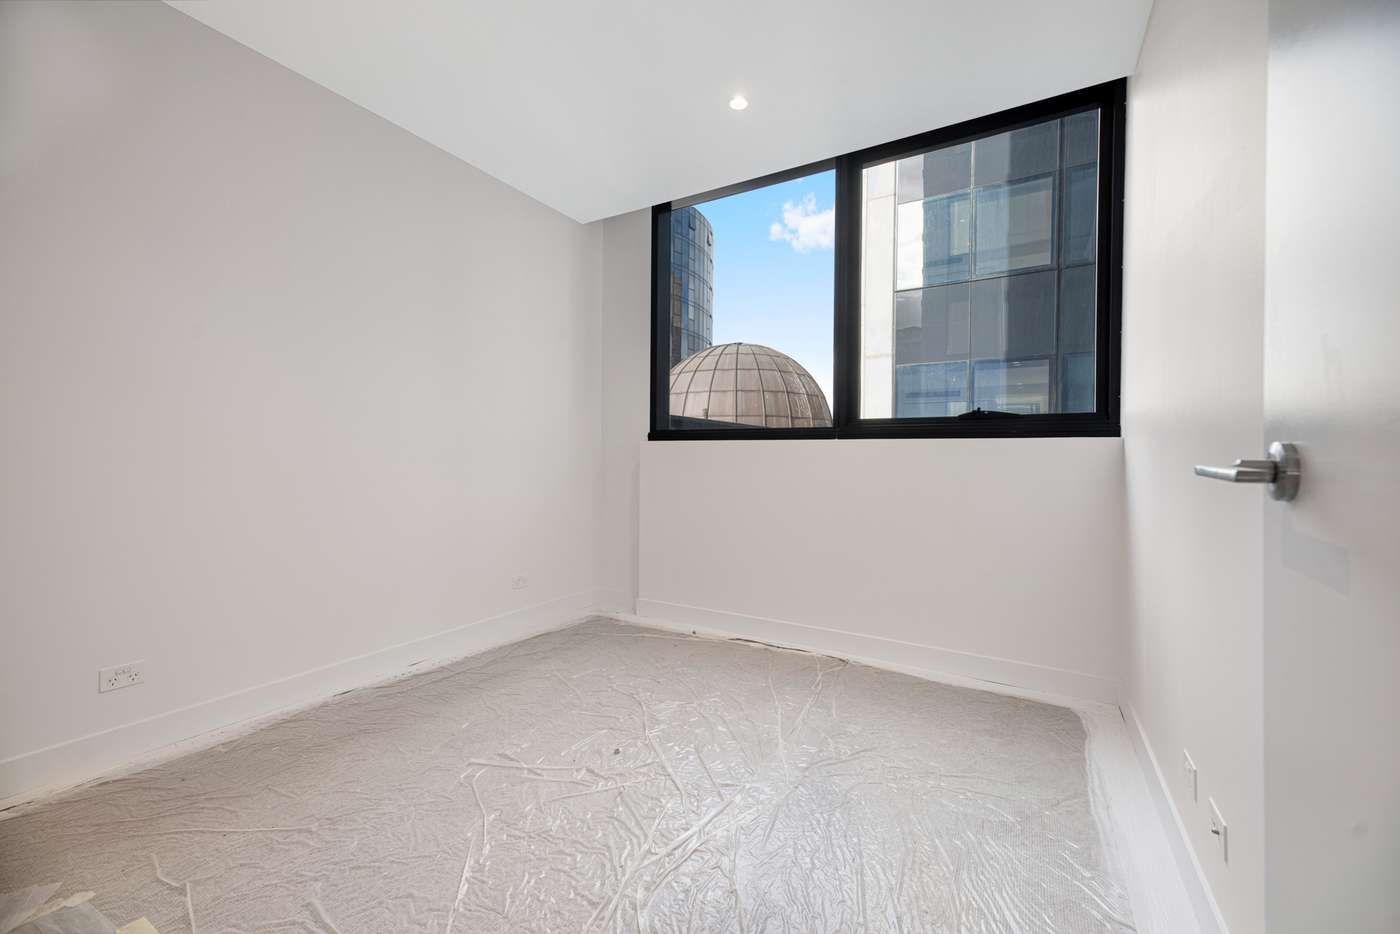 Fifth view of Homely apartment listing, 504/649 Chapel Street, South Yarra VIC 3141